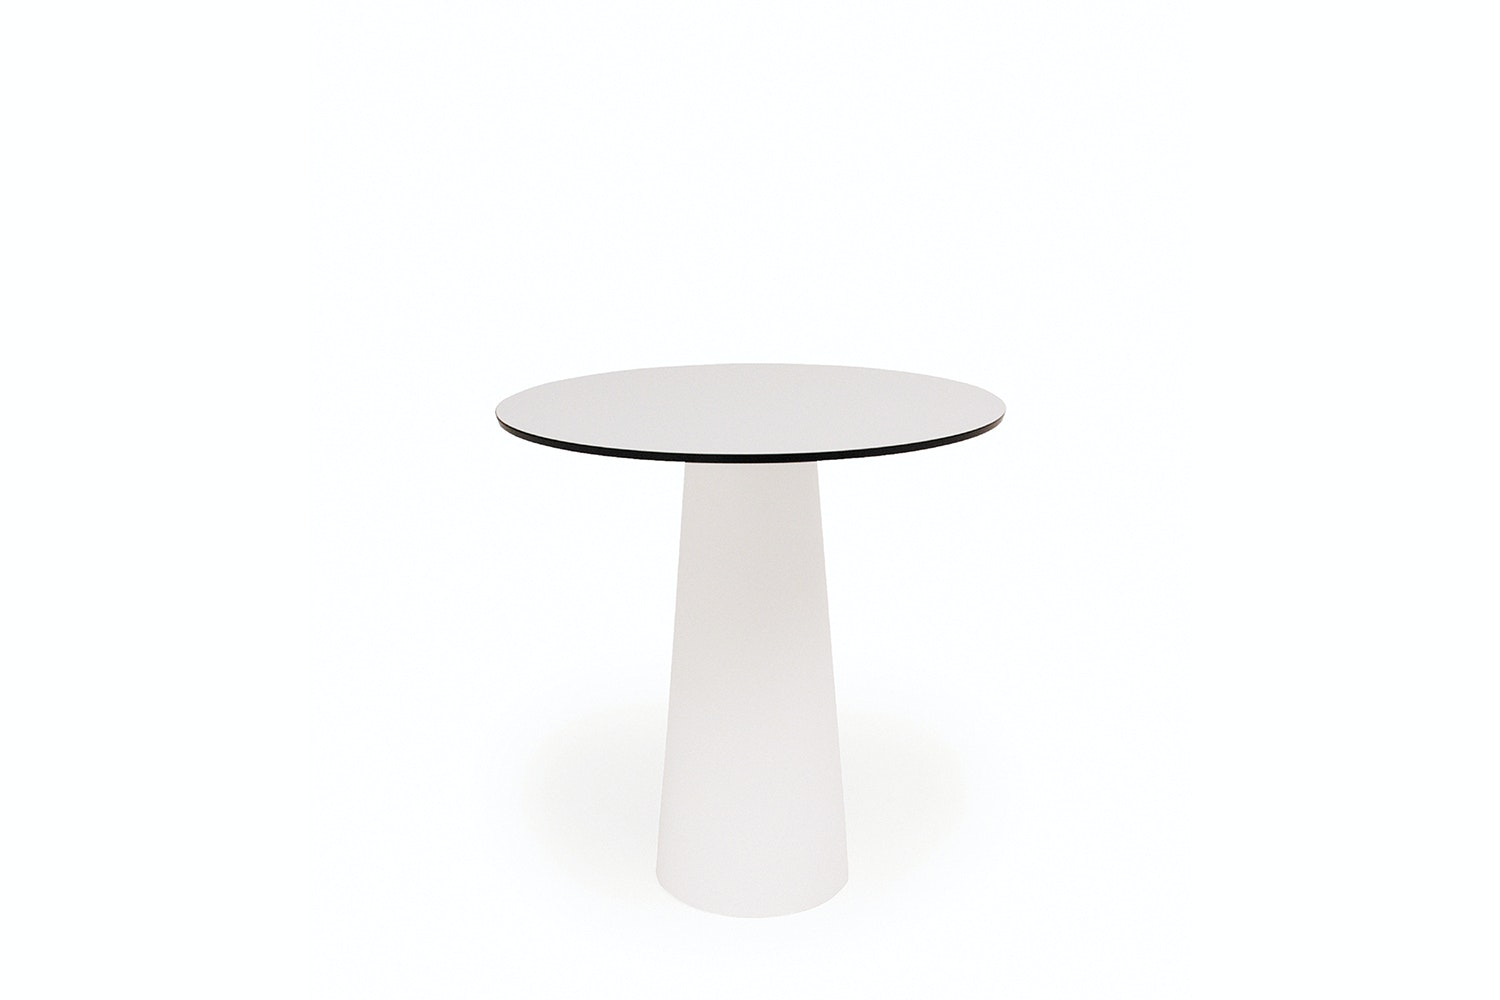 Container Table HPL Round 90cm by Marcel Wanders for Moooi